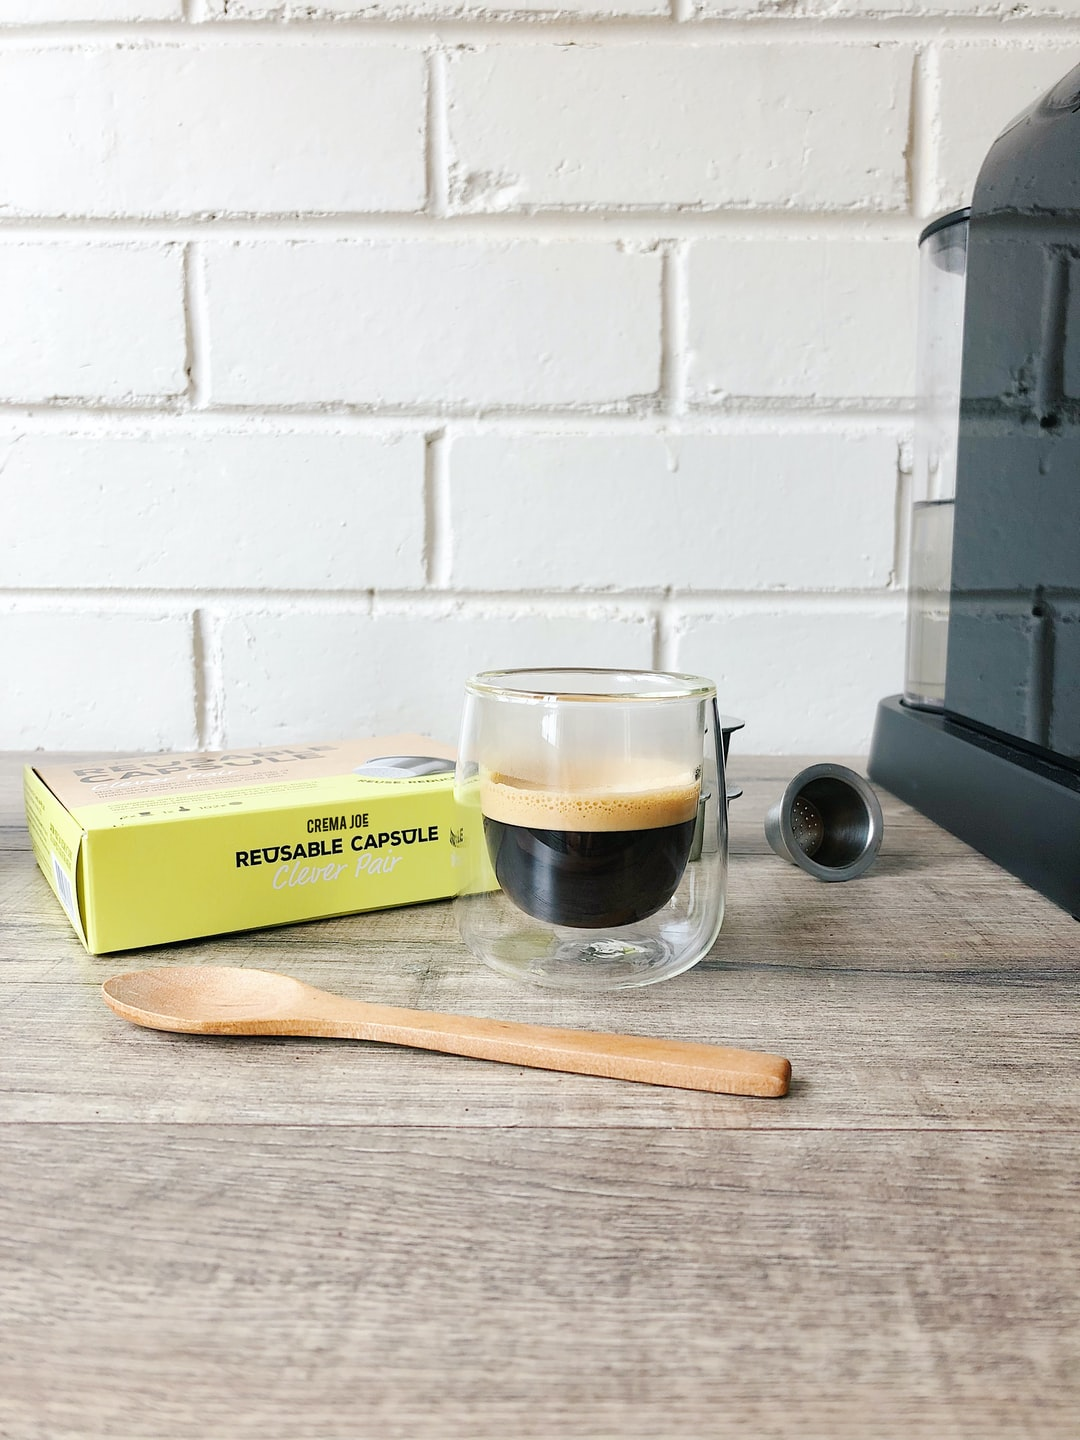 Espresso coffee in clear glass, made with reusable pod and capsule machine